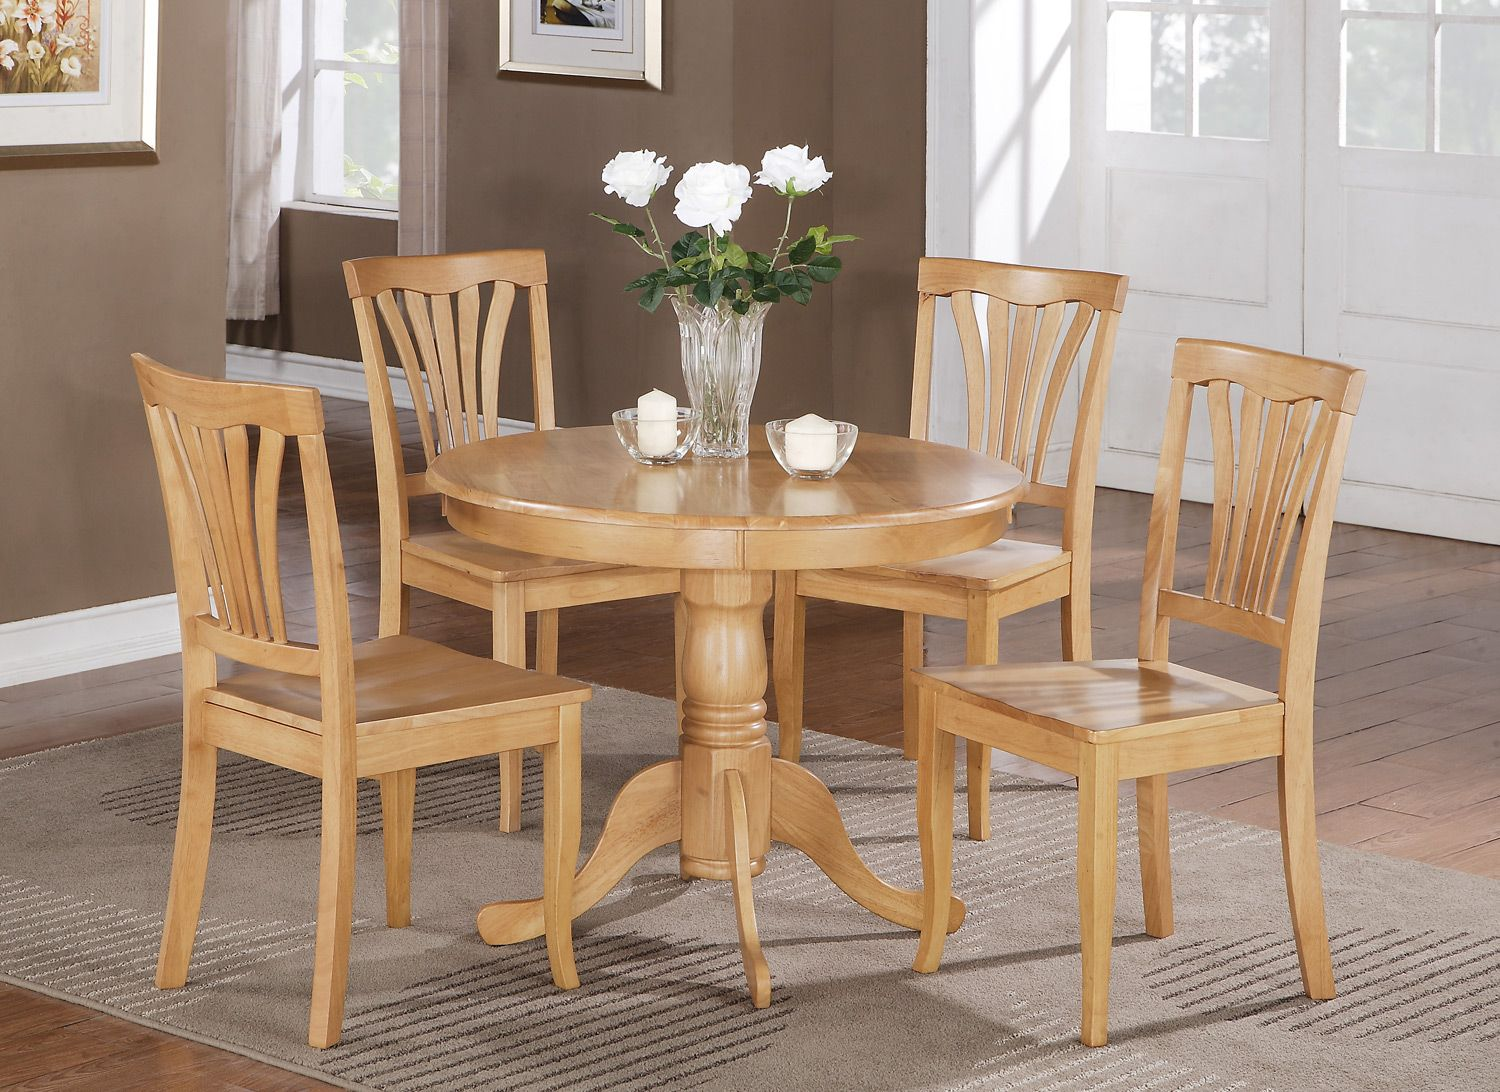 5PC SMALL KITCHEN DINING SET IN OAK FINISH //stores.ebay. : ebay dining table sets - pezcame.com